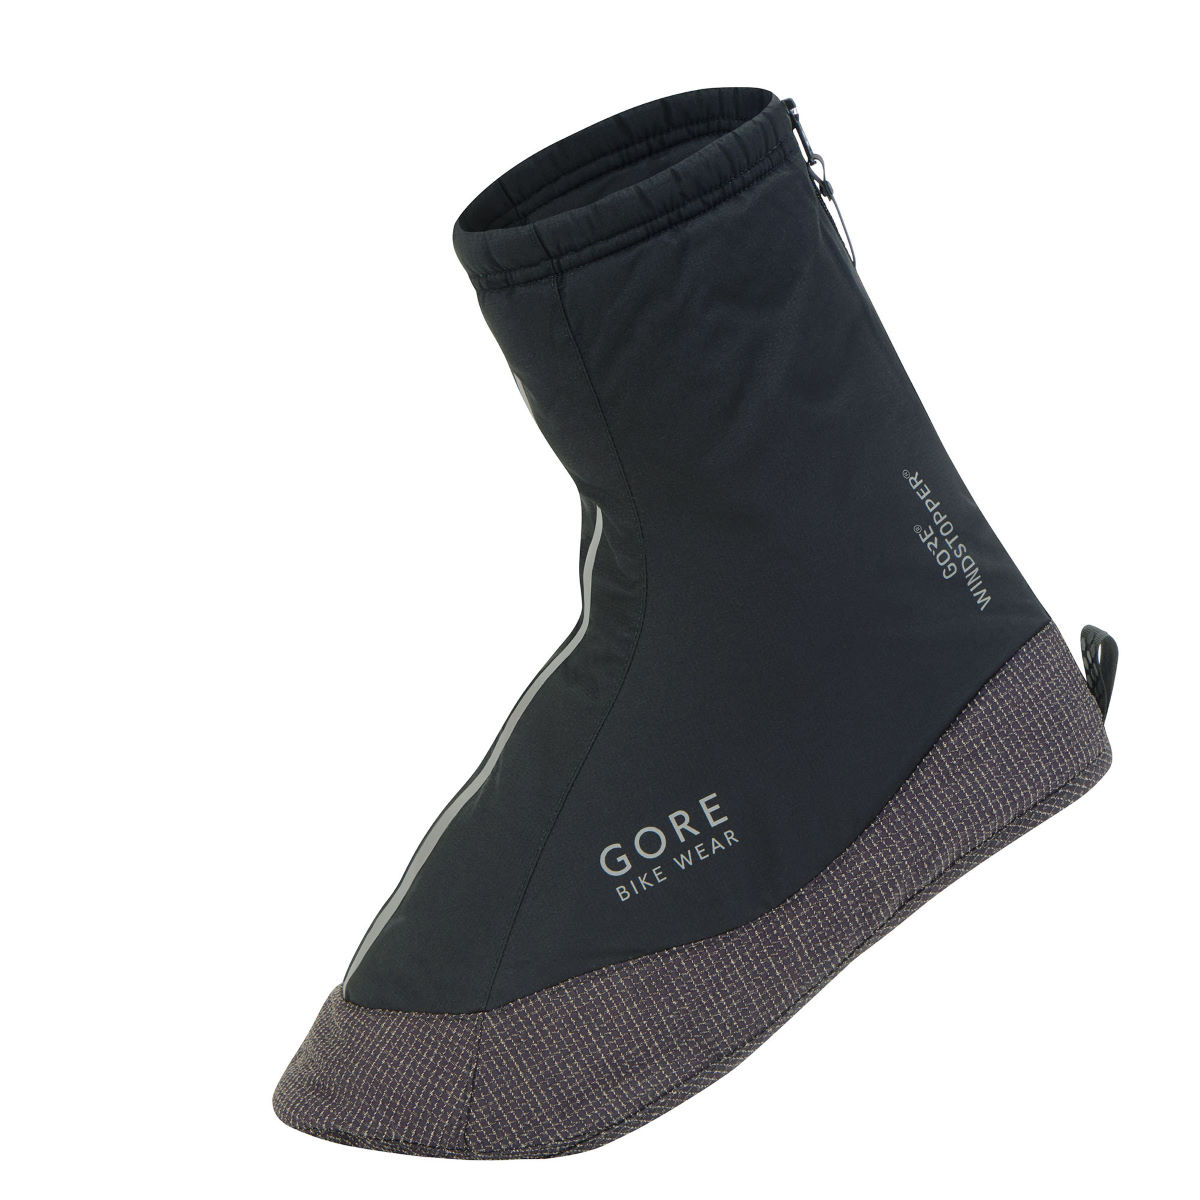 Couvre-chaussures Gore Bike Wear Universal Gore Windstopper (isolés)